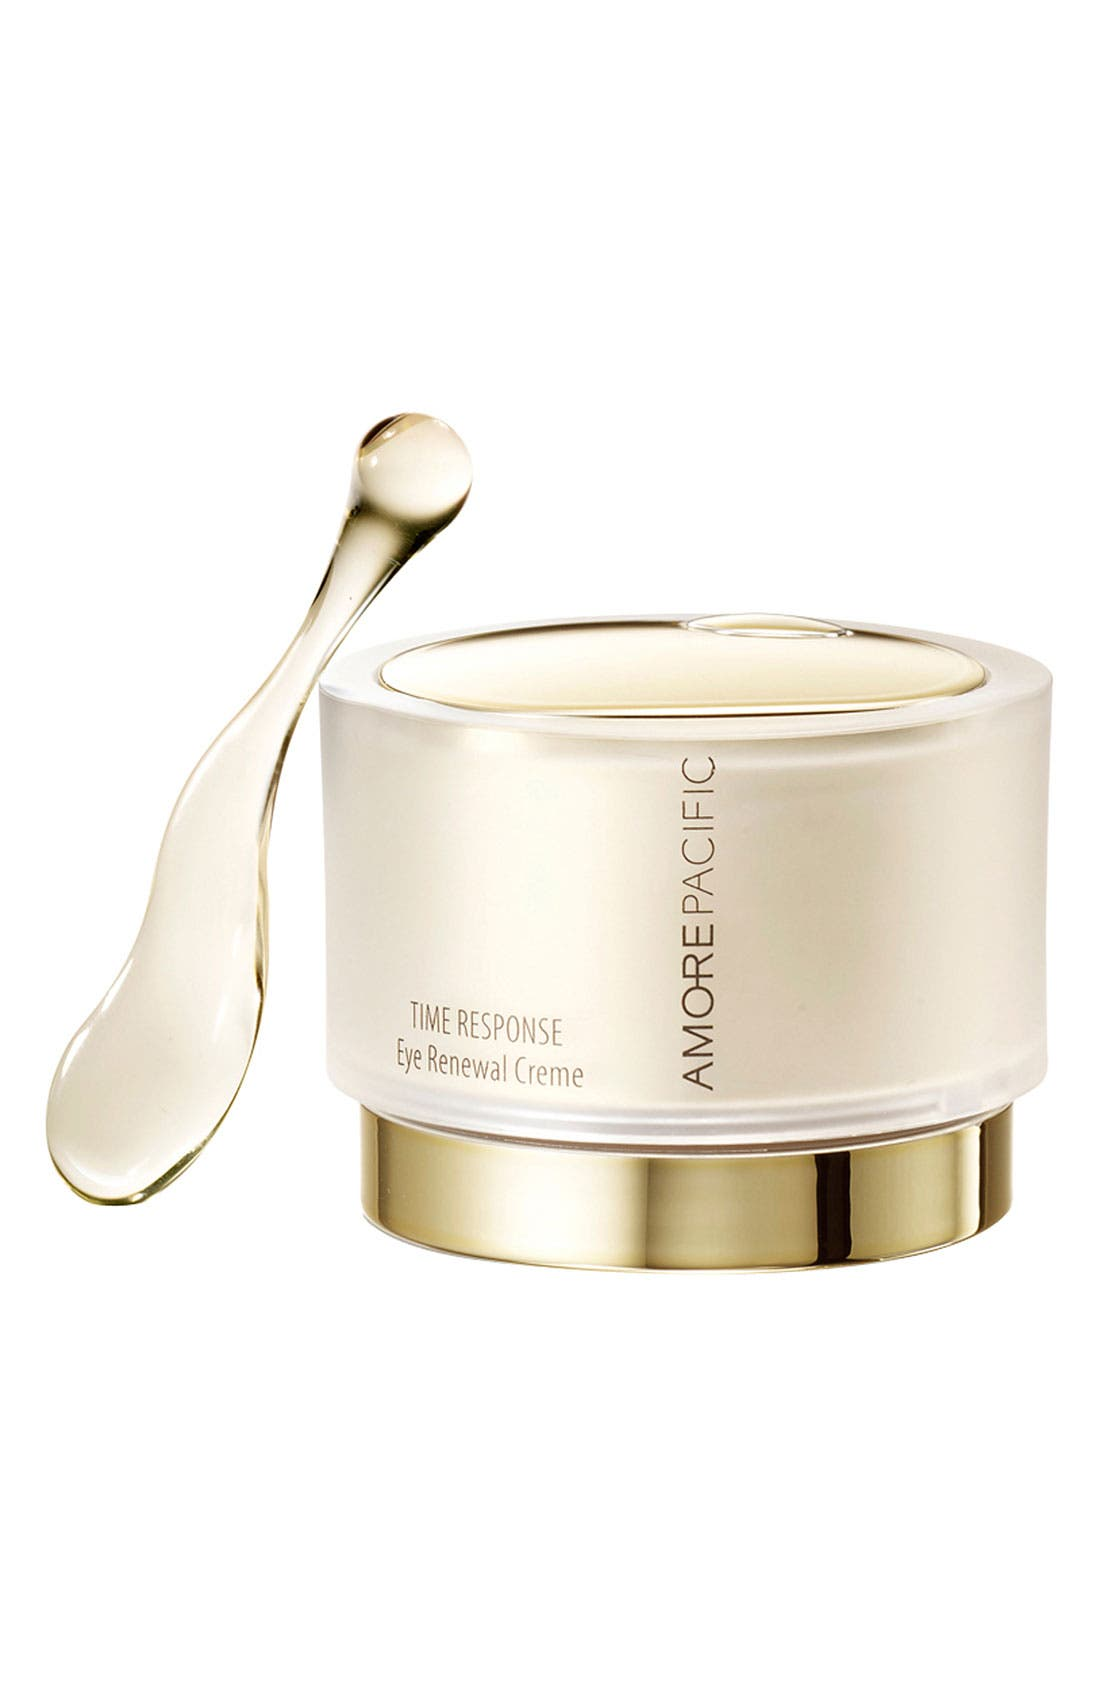 AMOREPACIFIC Time Response Eye Renewal Crème